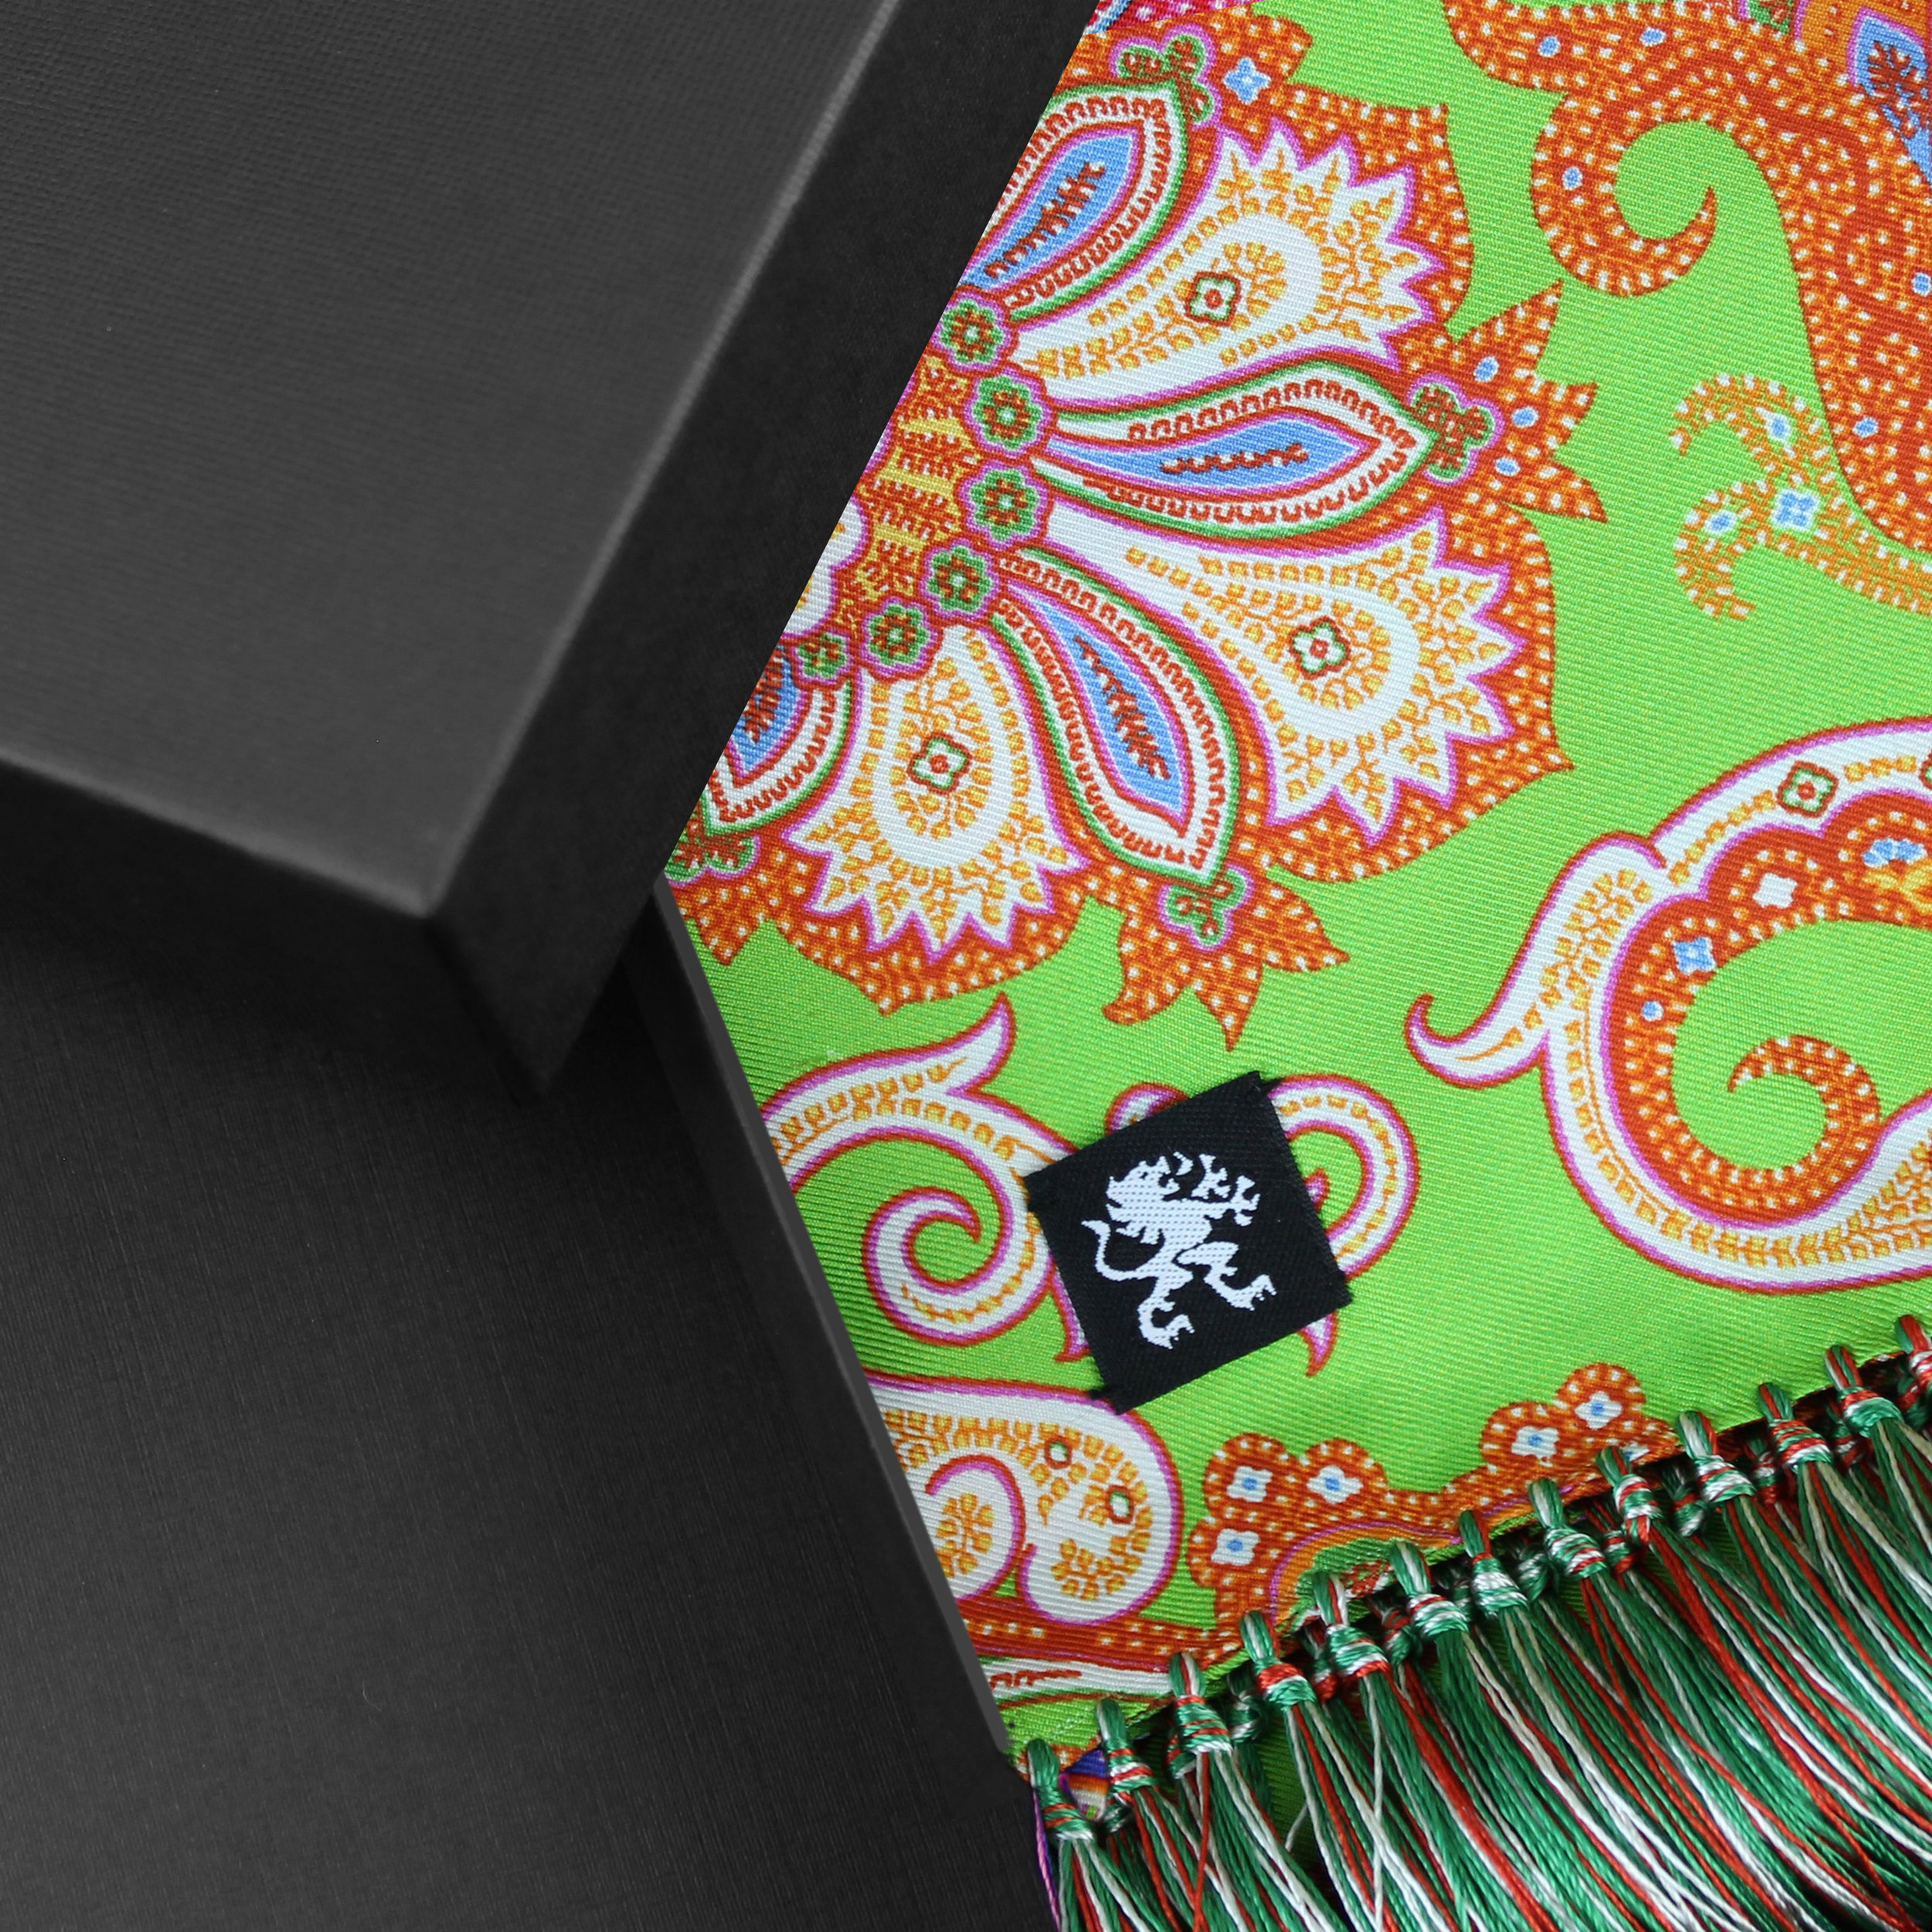 psychedelic-green-box-square.jpg